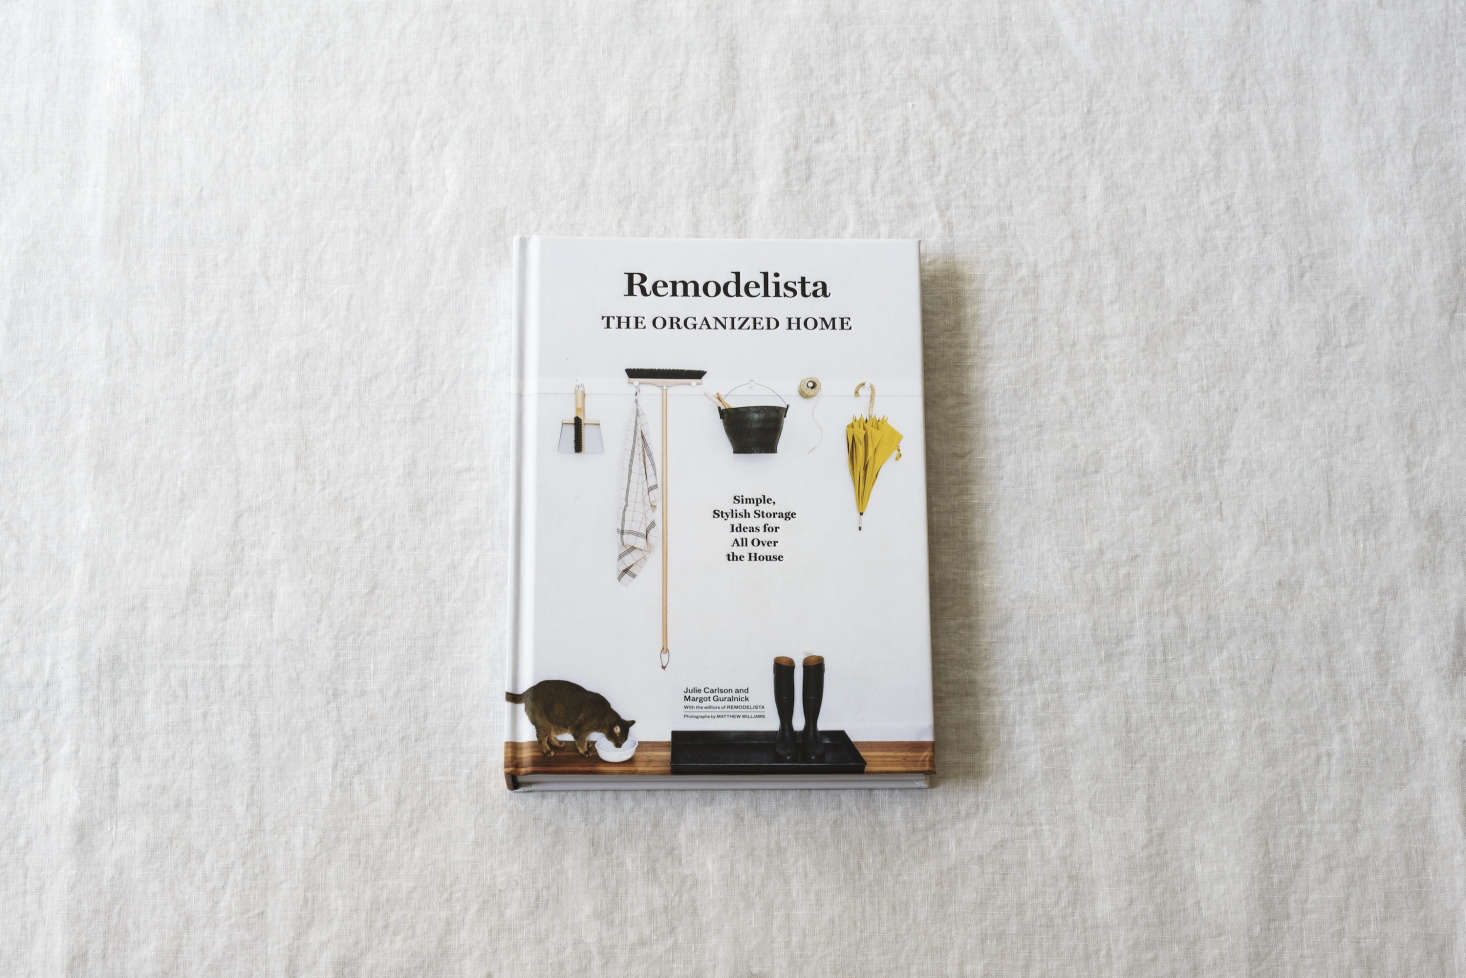 And finally, a shameless plug for our latest book, released just a month ago, Remodelista: The Organized Home: Simple, Stylish Storage Ideas for All Over the House; $.97 from Amazon. Read more inAnnouncing Our New Book: Remodelista: The Organized Home.